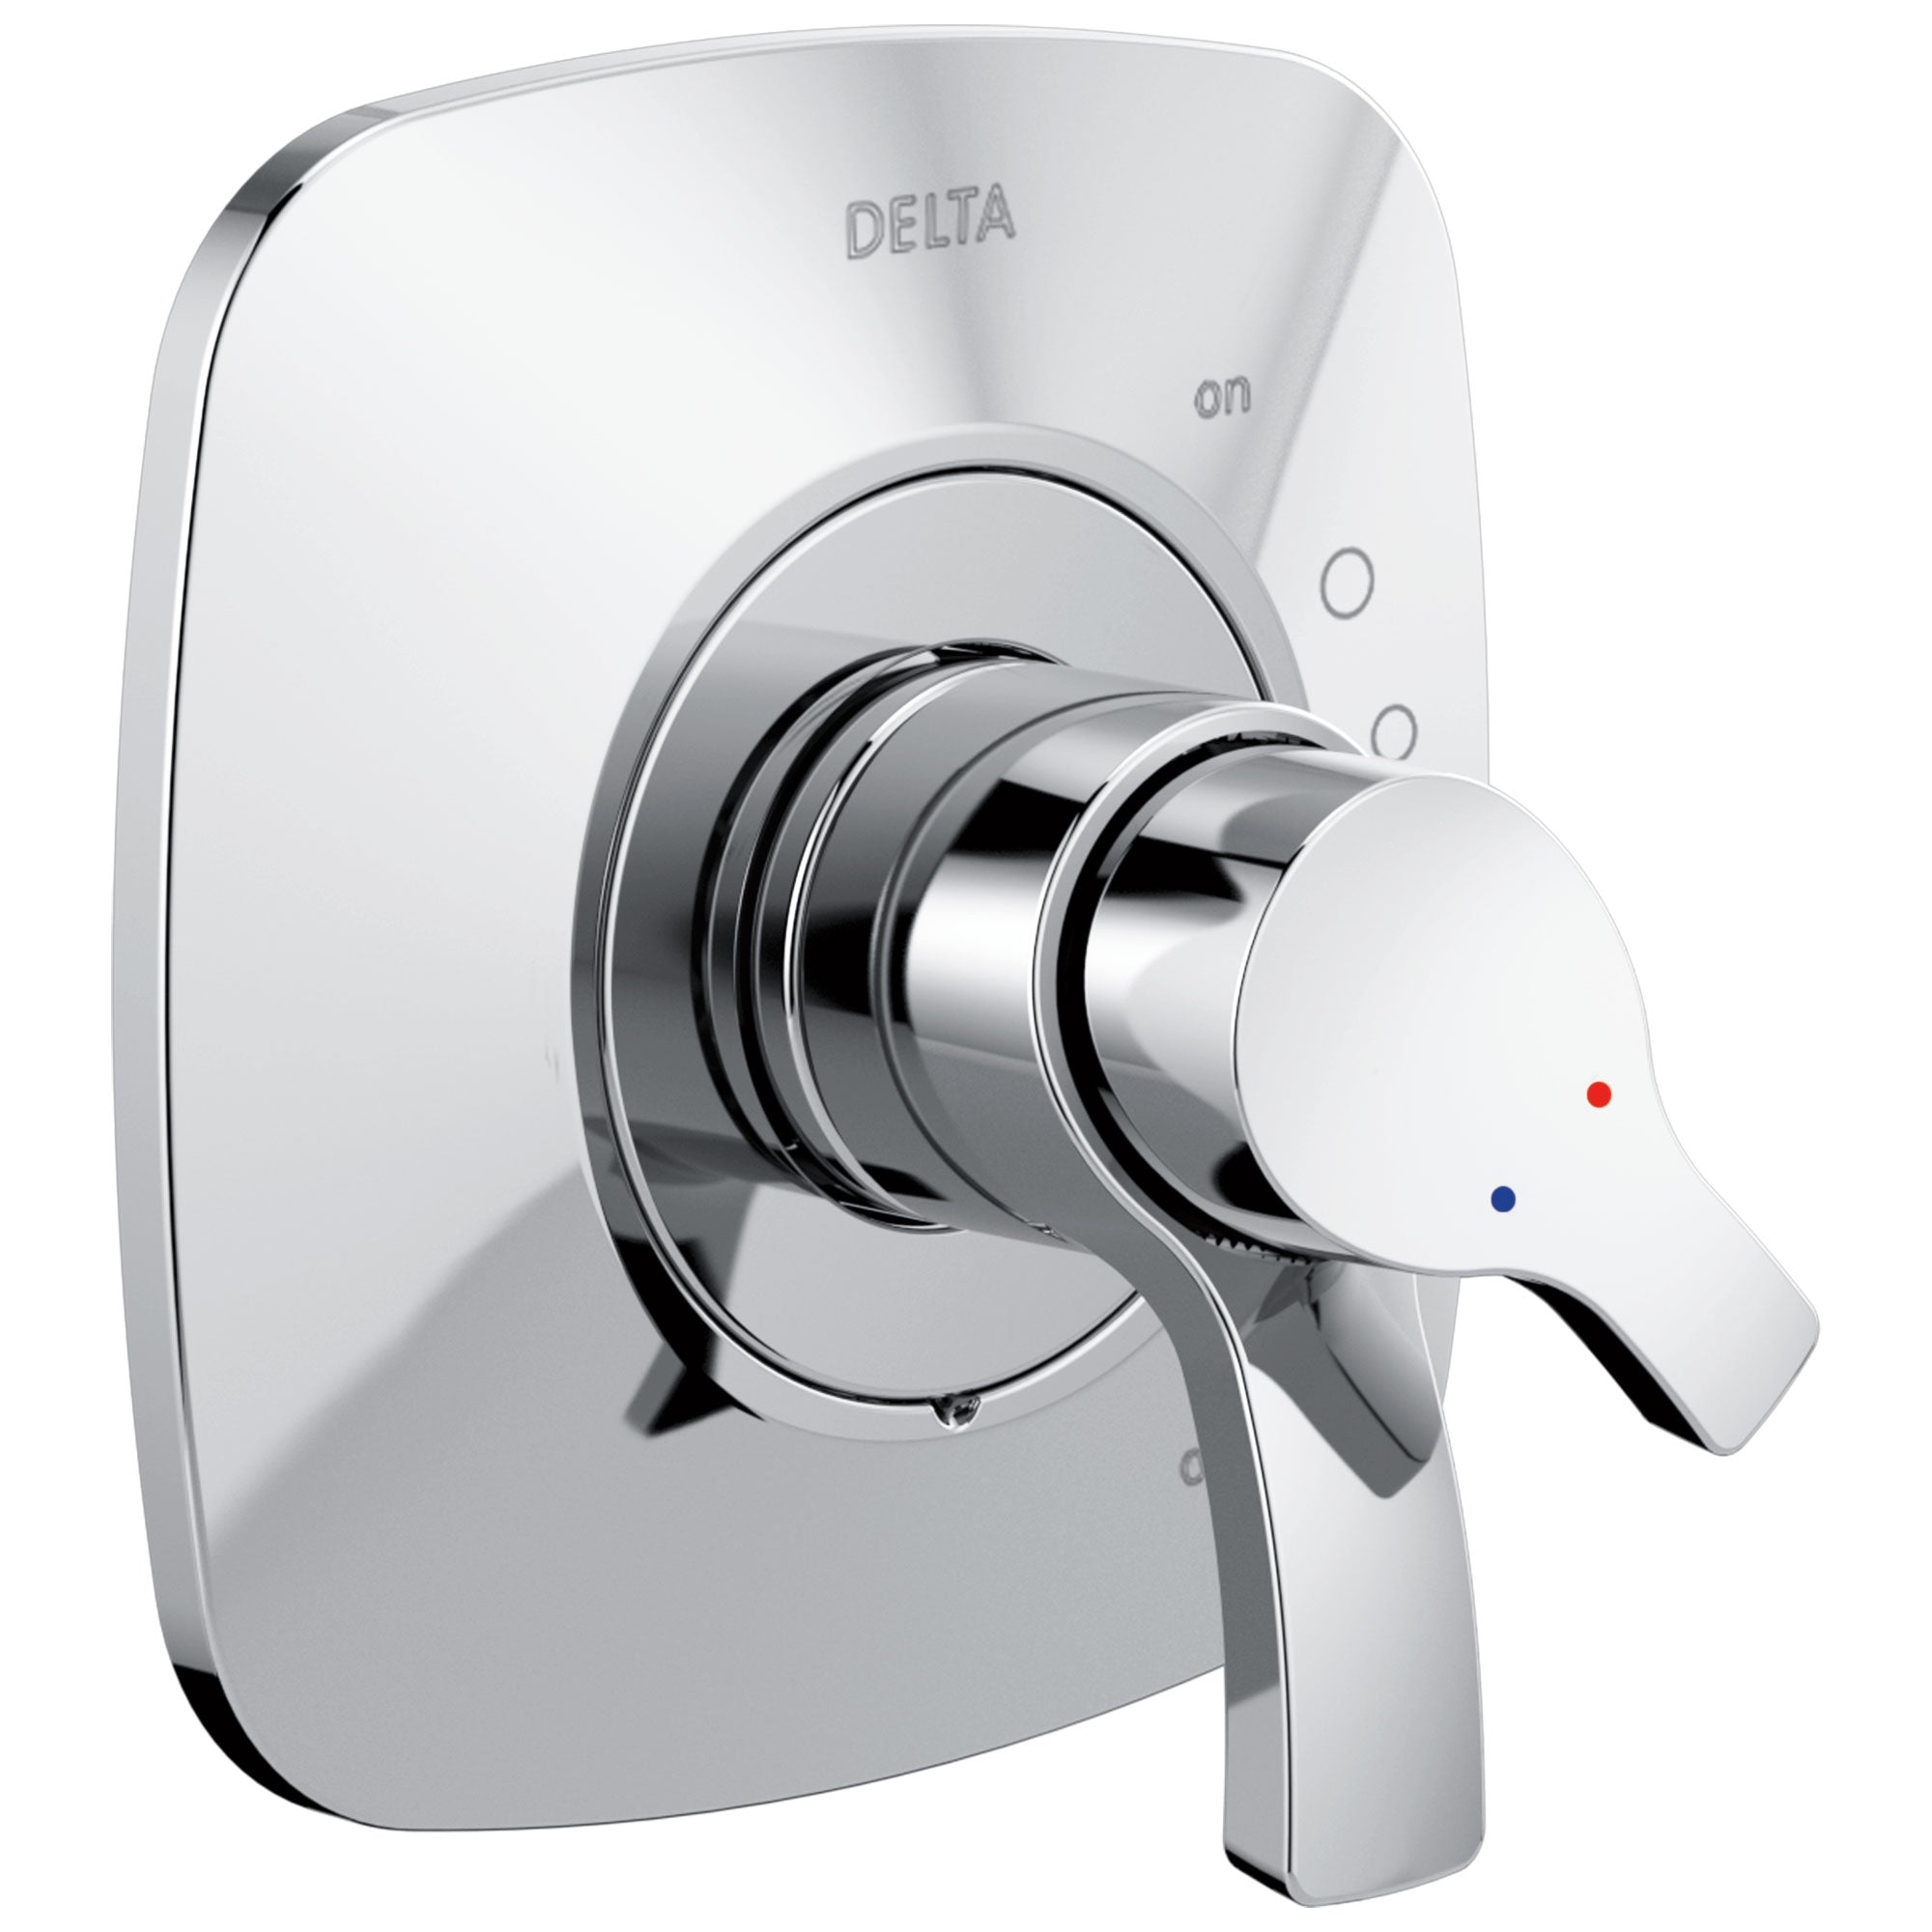 Delta Tesla Collection Chrome Monitor 17 Dual Temperature and Water Pressure Shower Faucet Control Handle Trim Kit (Valve Sold Separately) 732790